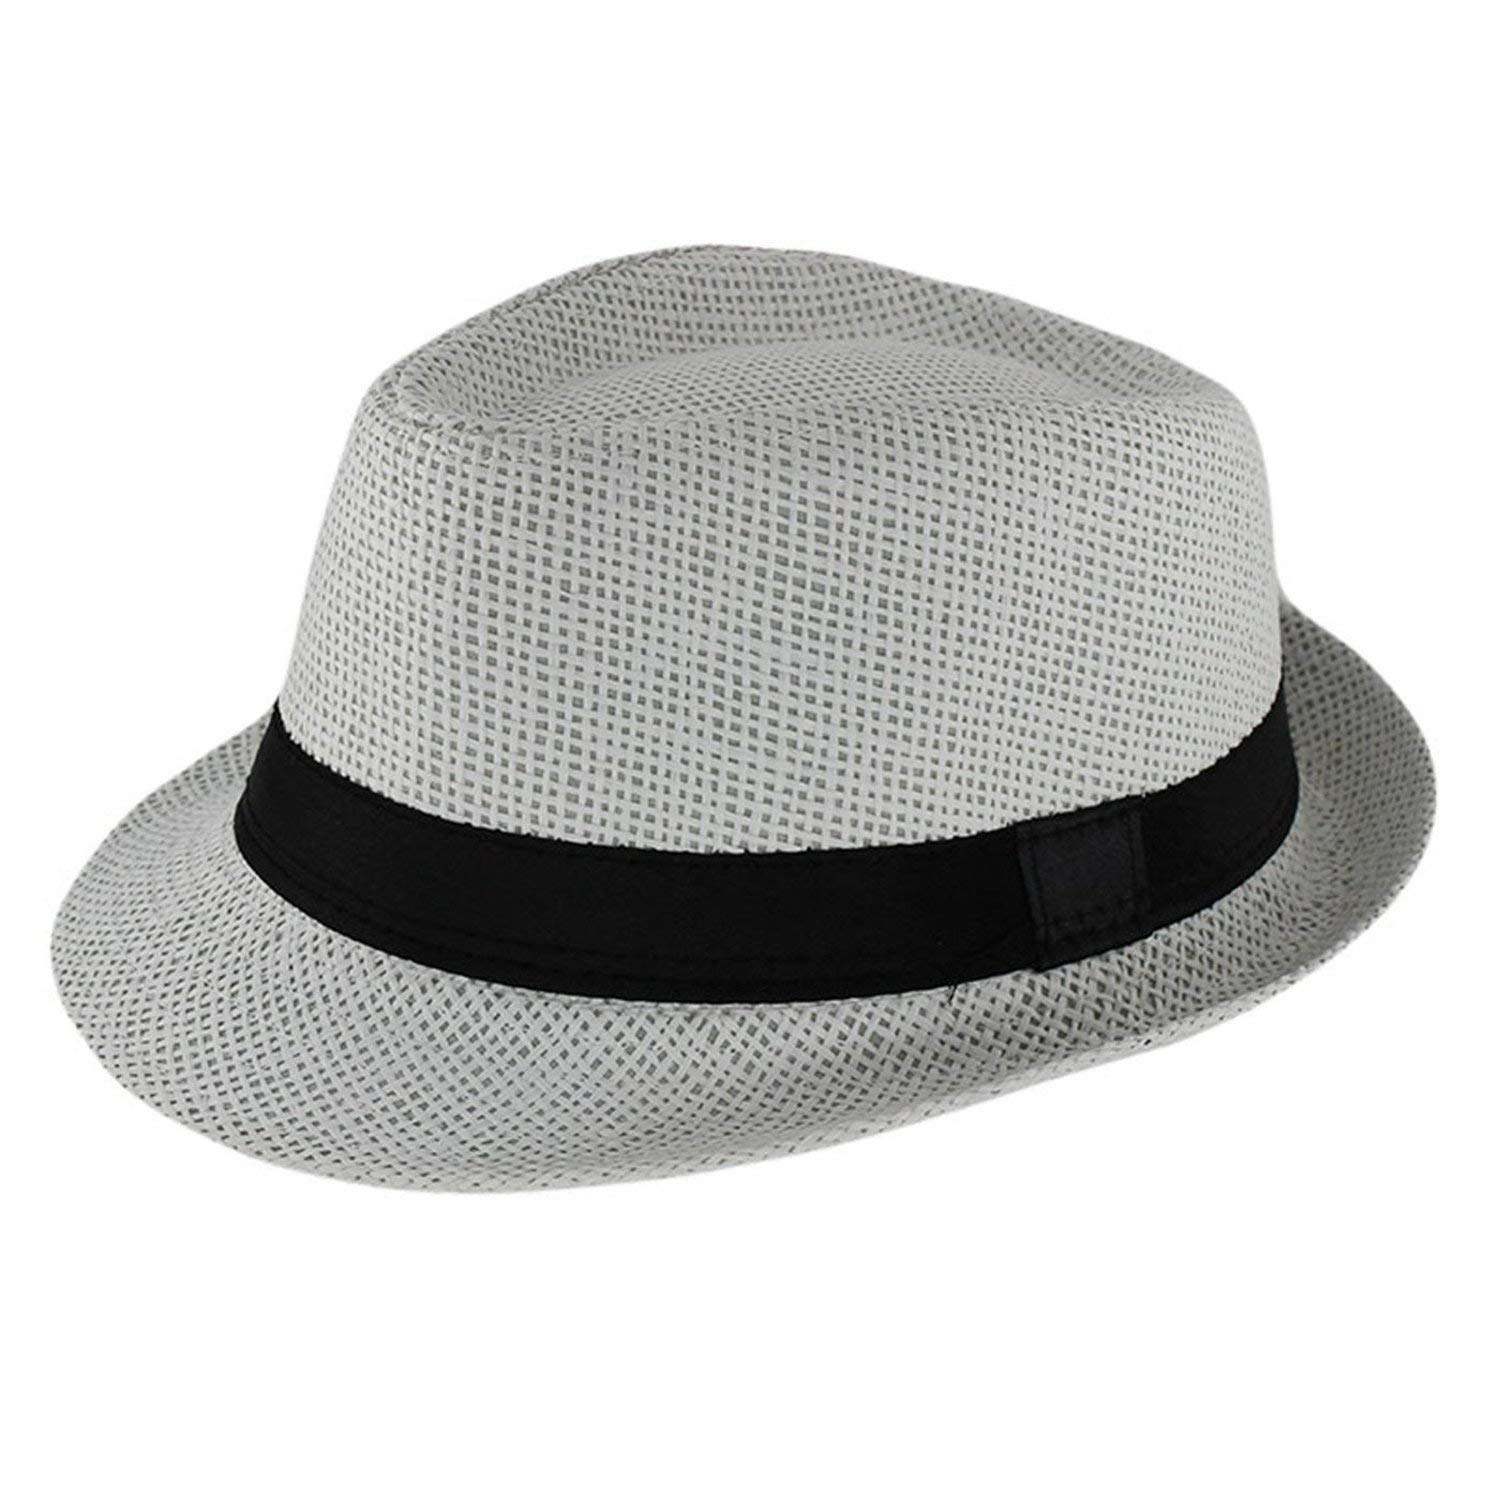 6ff569ce670fa Get Quotations · New Fashion Kids Sun Hat for Boys Summer Caps Casual Straw Caps  Children Solid Colors Bonnet